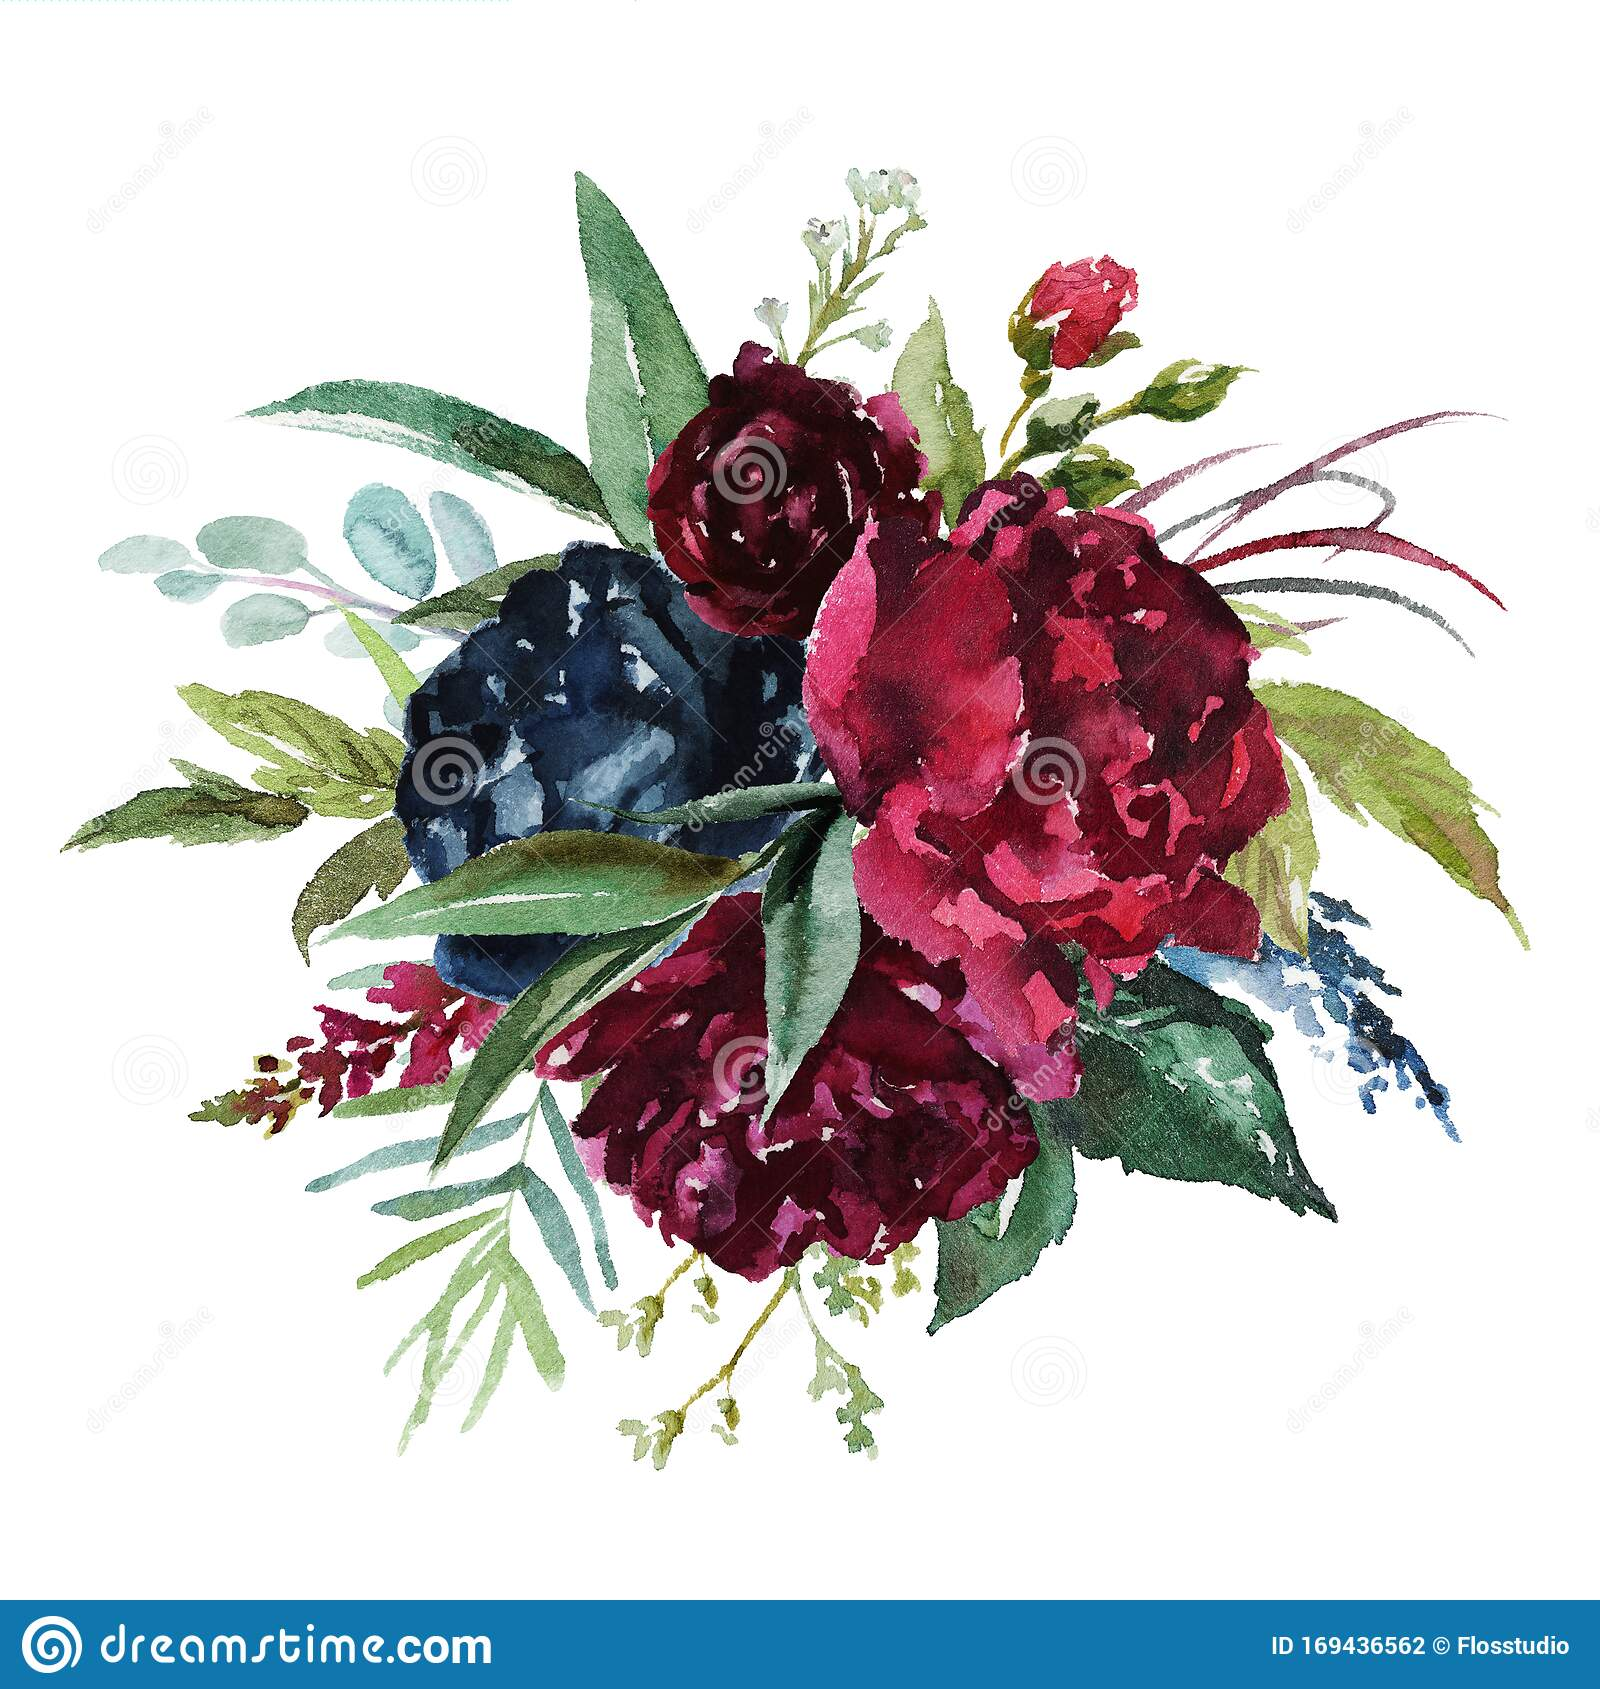 Watercolor Floral Illustration Flowers Burgundy Bouquet Stock Illustration Illustration Of Drawing Blossom 169436562